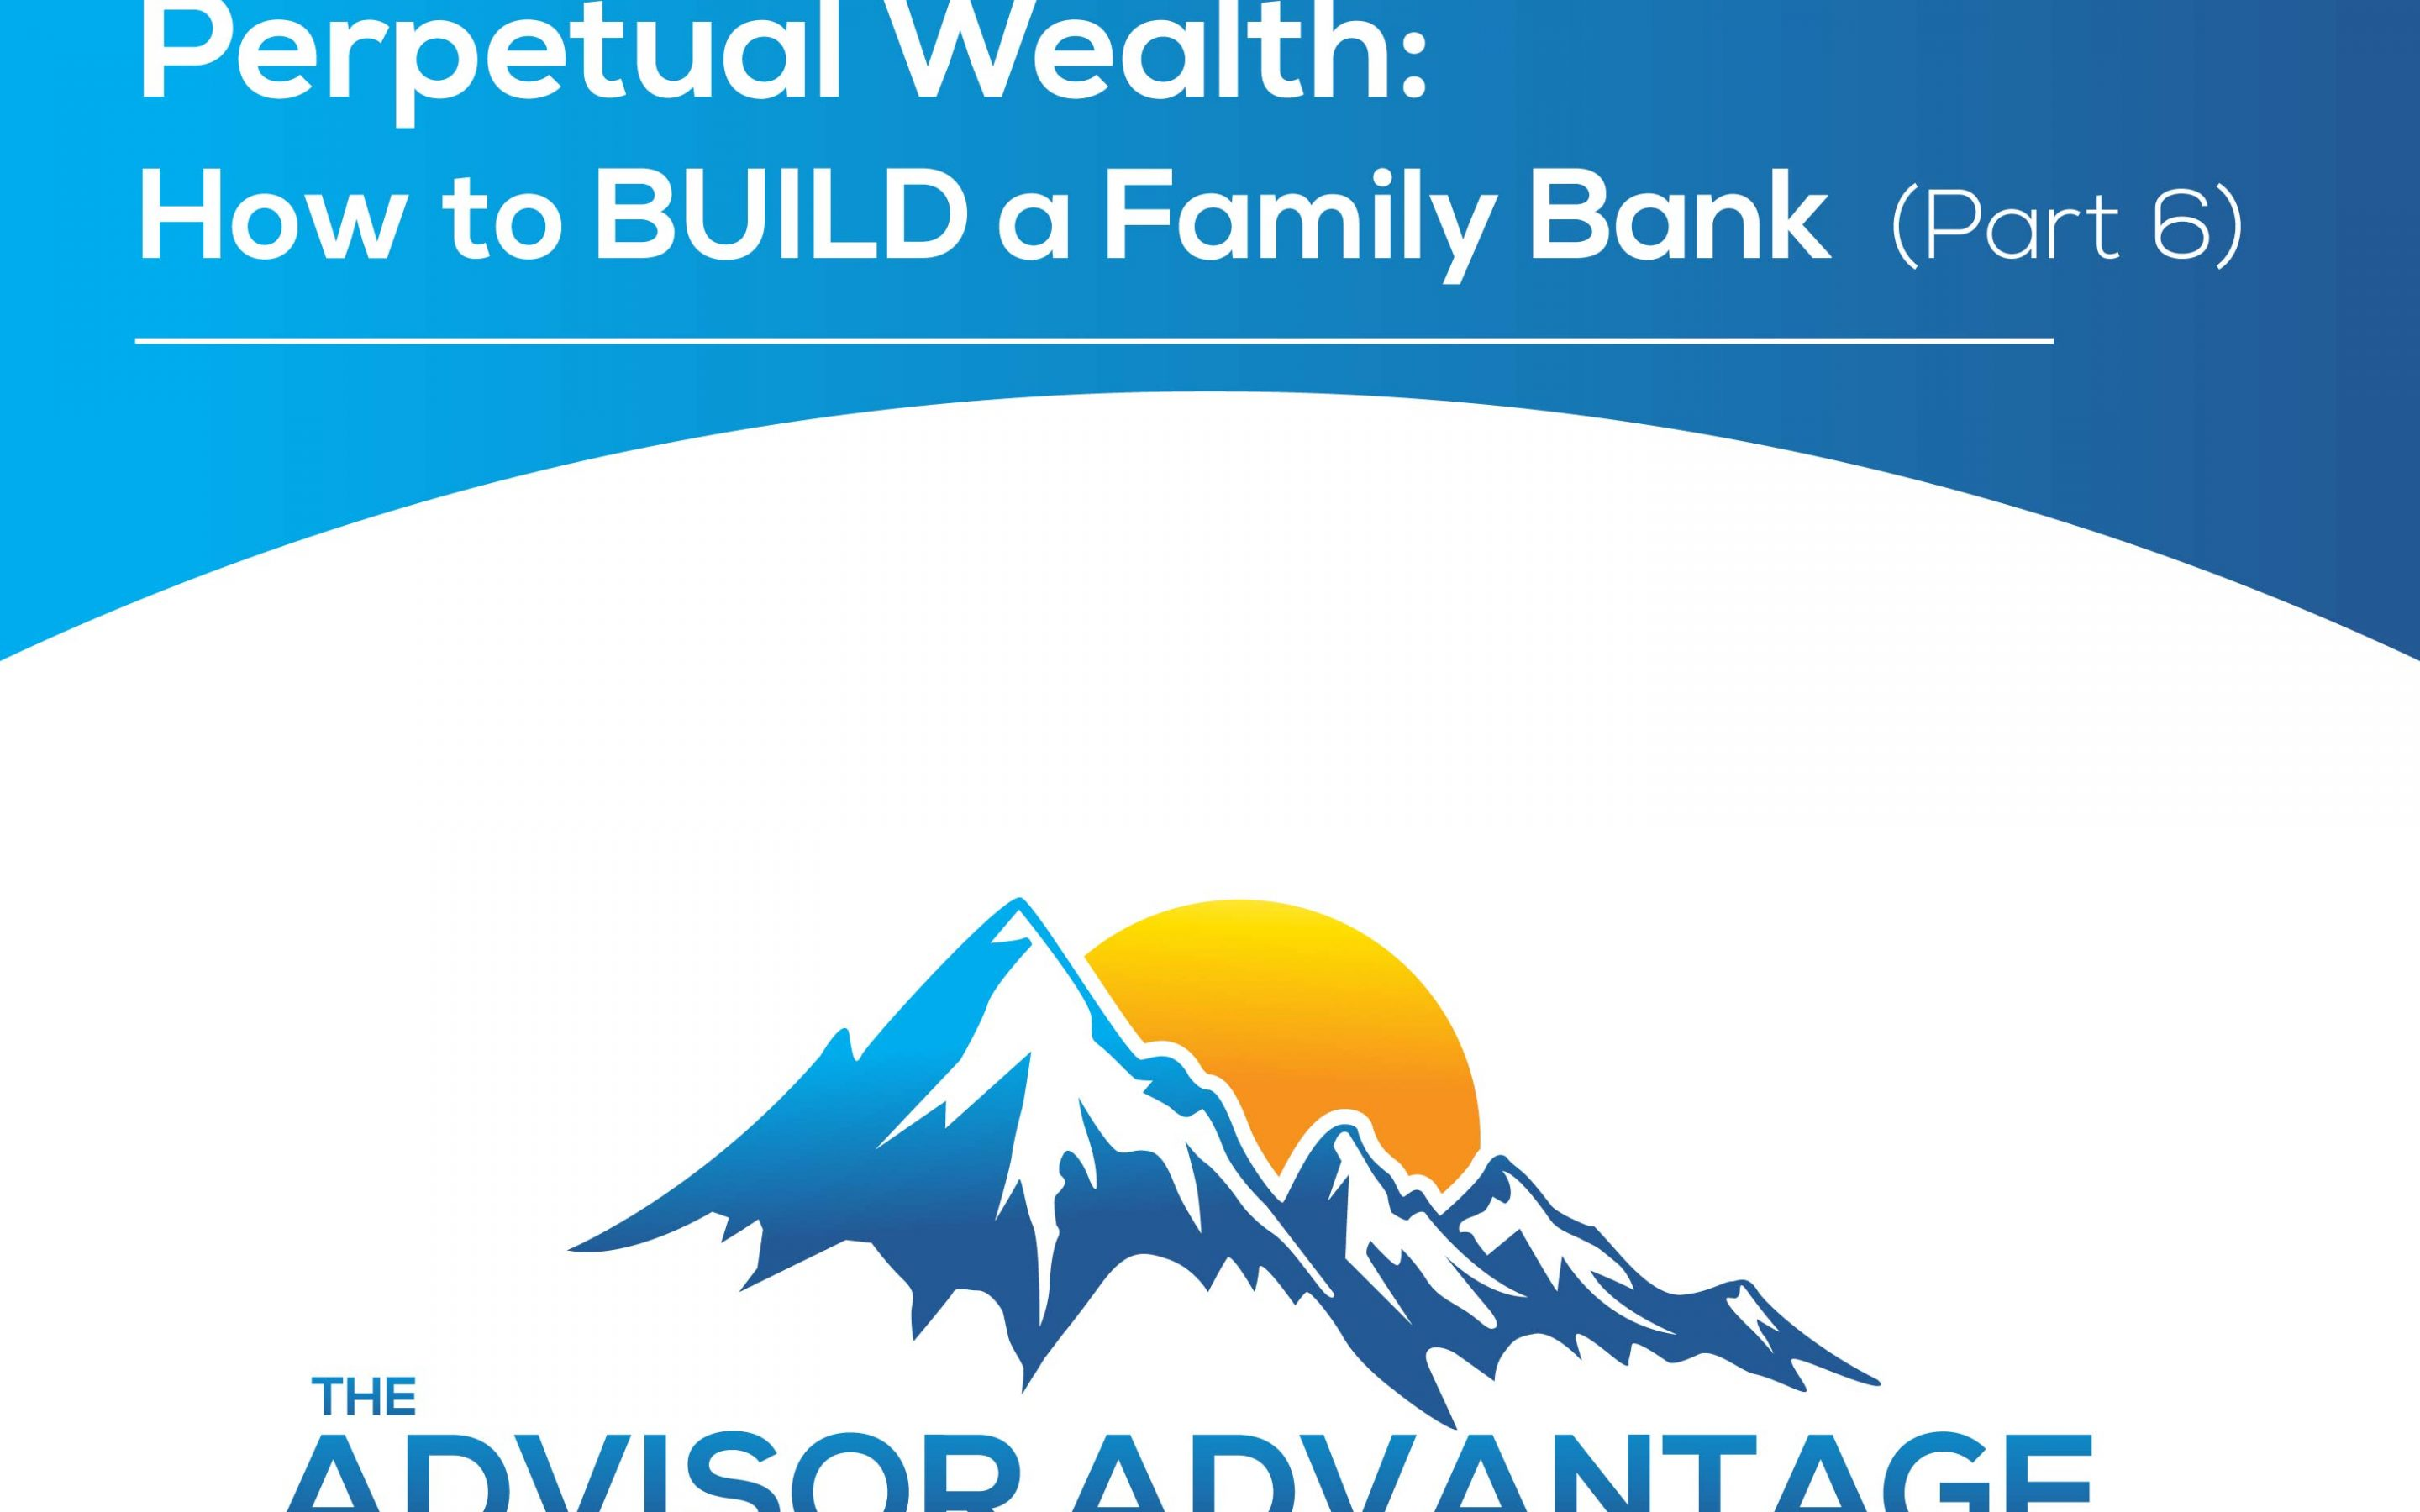 Perpetual Wealth: How to BUILD a Family Bank